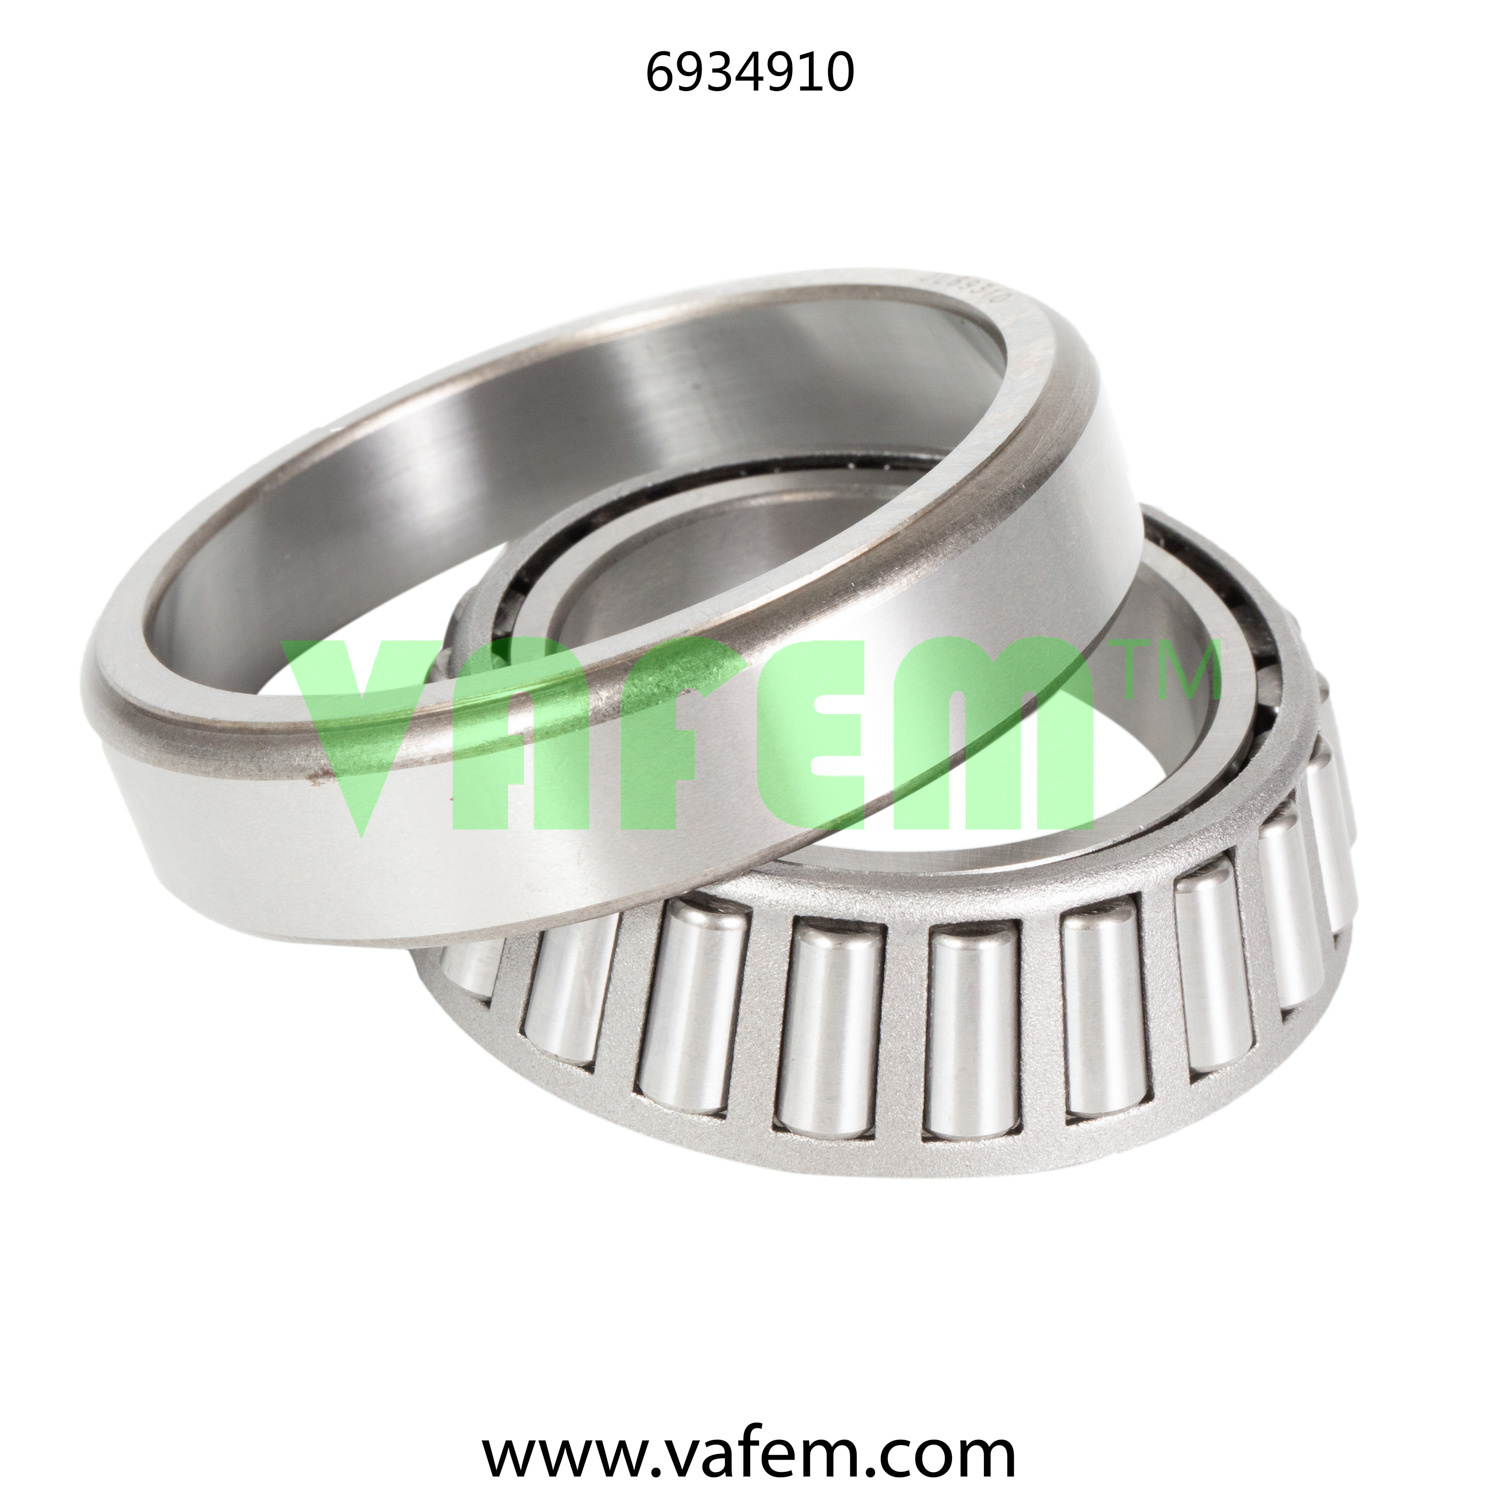 1 Pcs Timken 3984 /& 3920 Cup /& Cone Tapered Roller Bearing Race Set Brand New